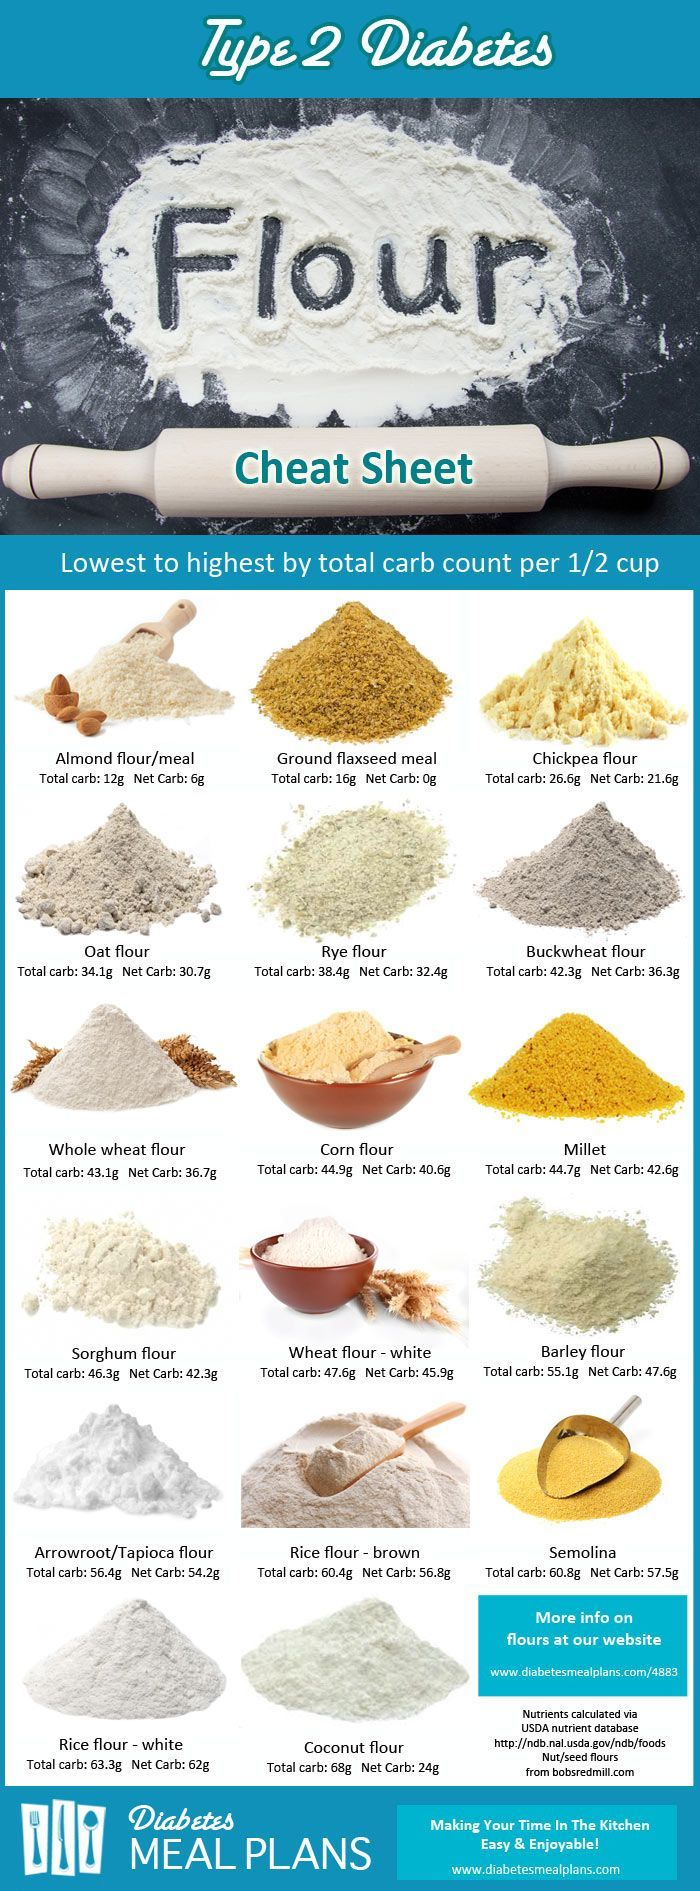 The best flours to use for managing blood sugar and A1C levels in type 2 diabetes.